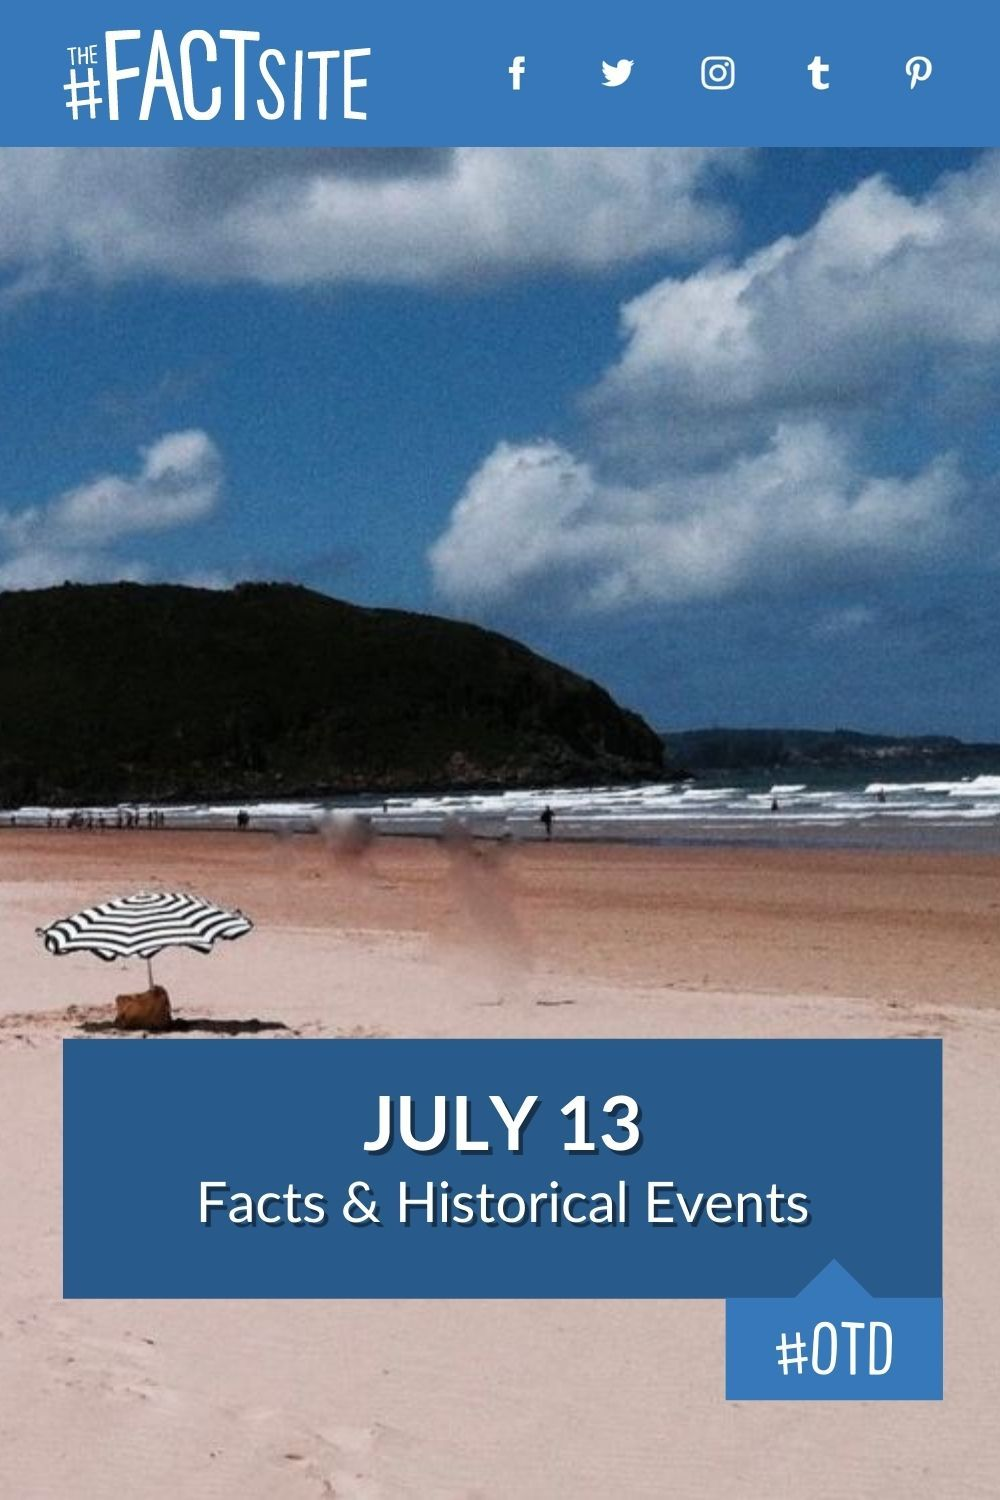 Facts & Historic Events That Happened on July 13